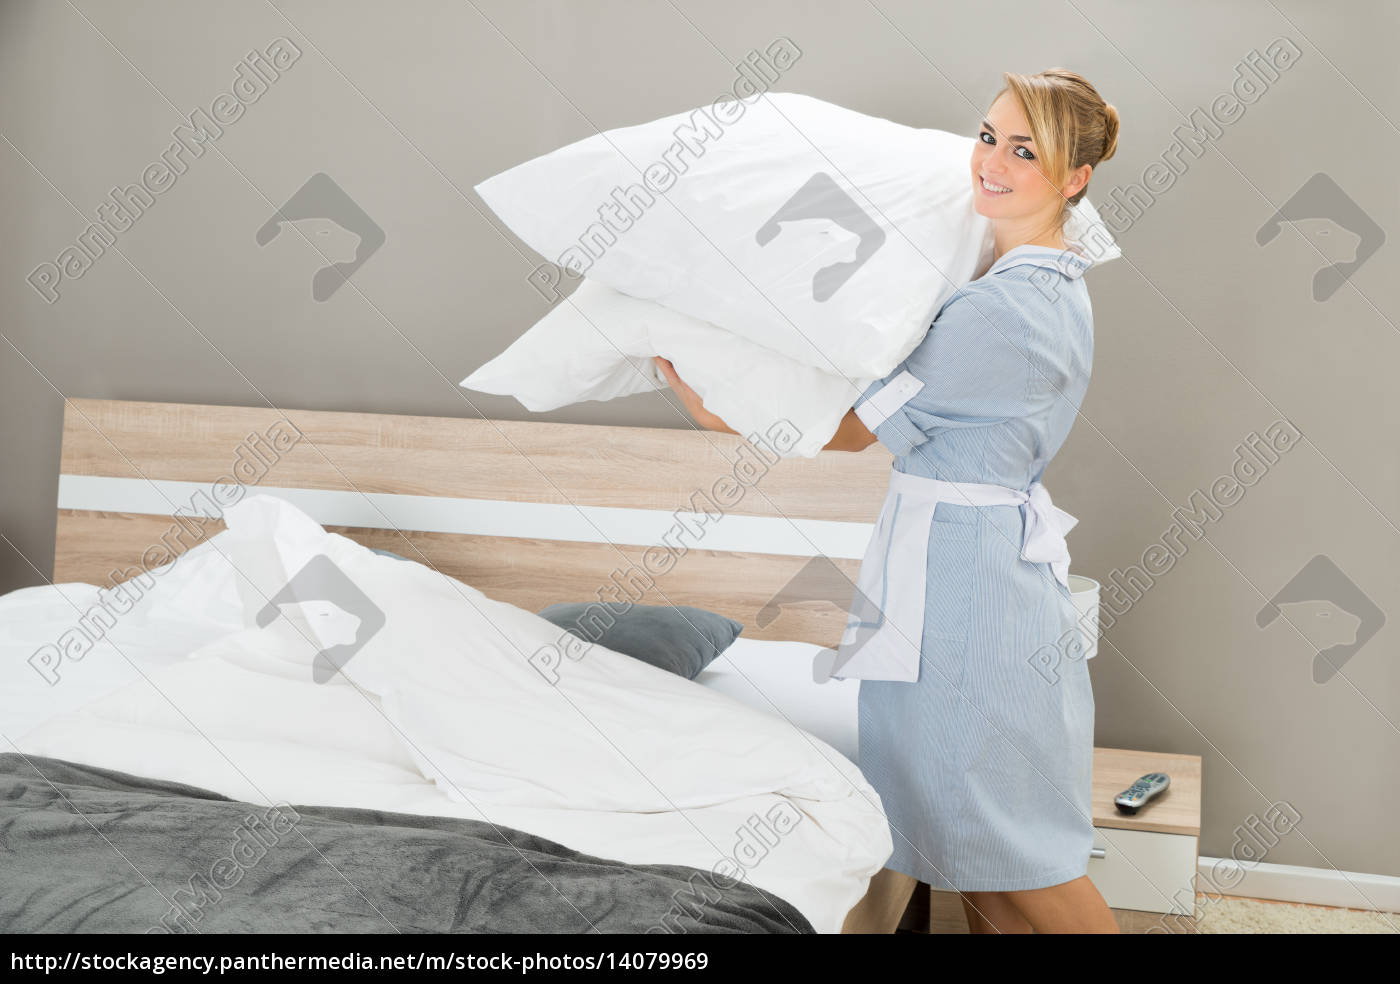 housekeeping, worker, with, pillows - 14079969